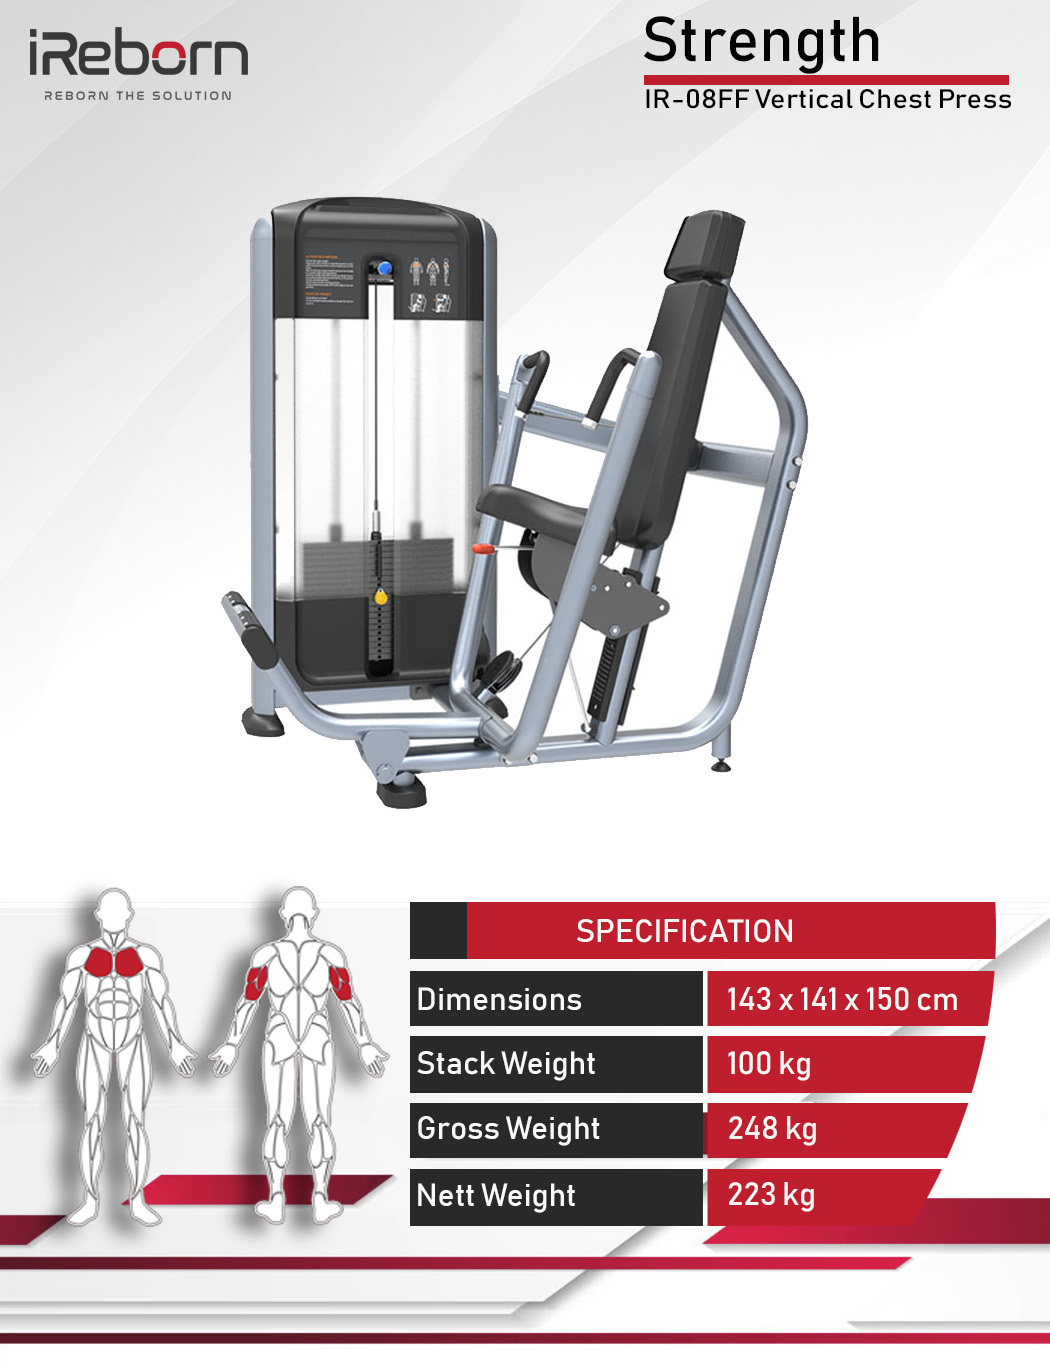 IR-08FF Vertical Chest Press 10